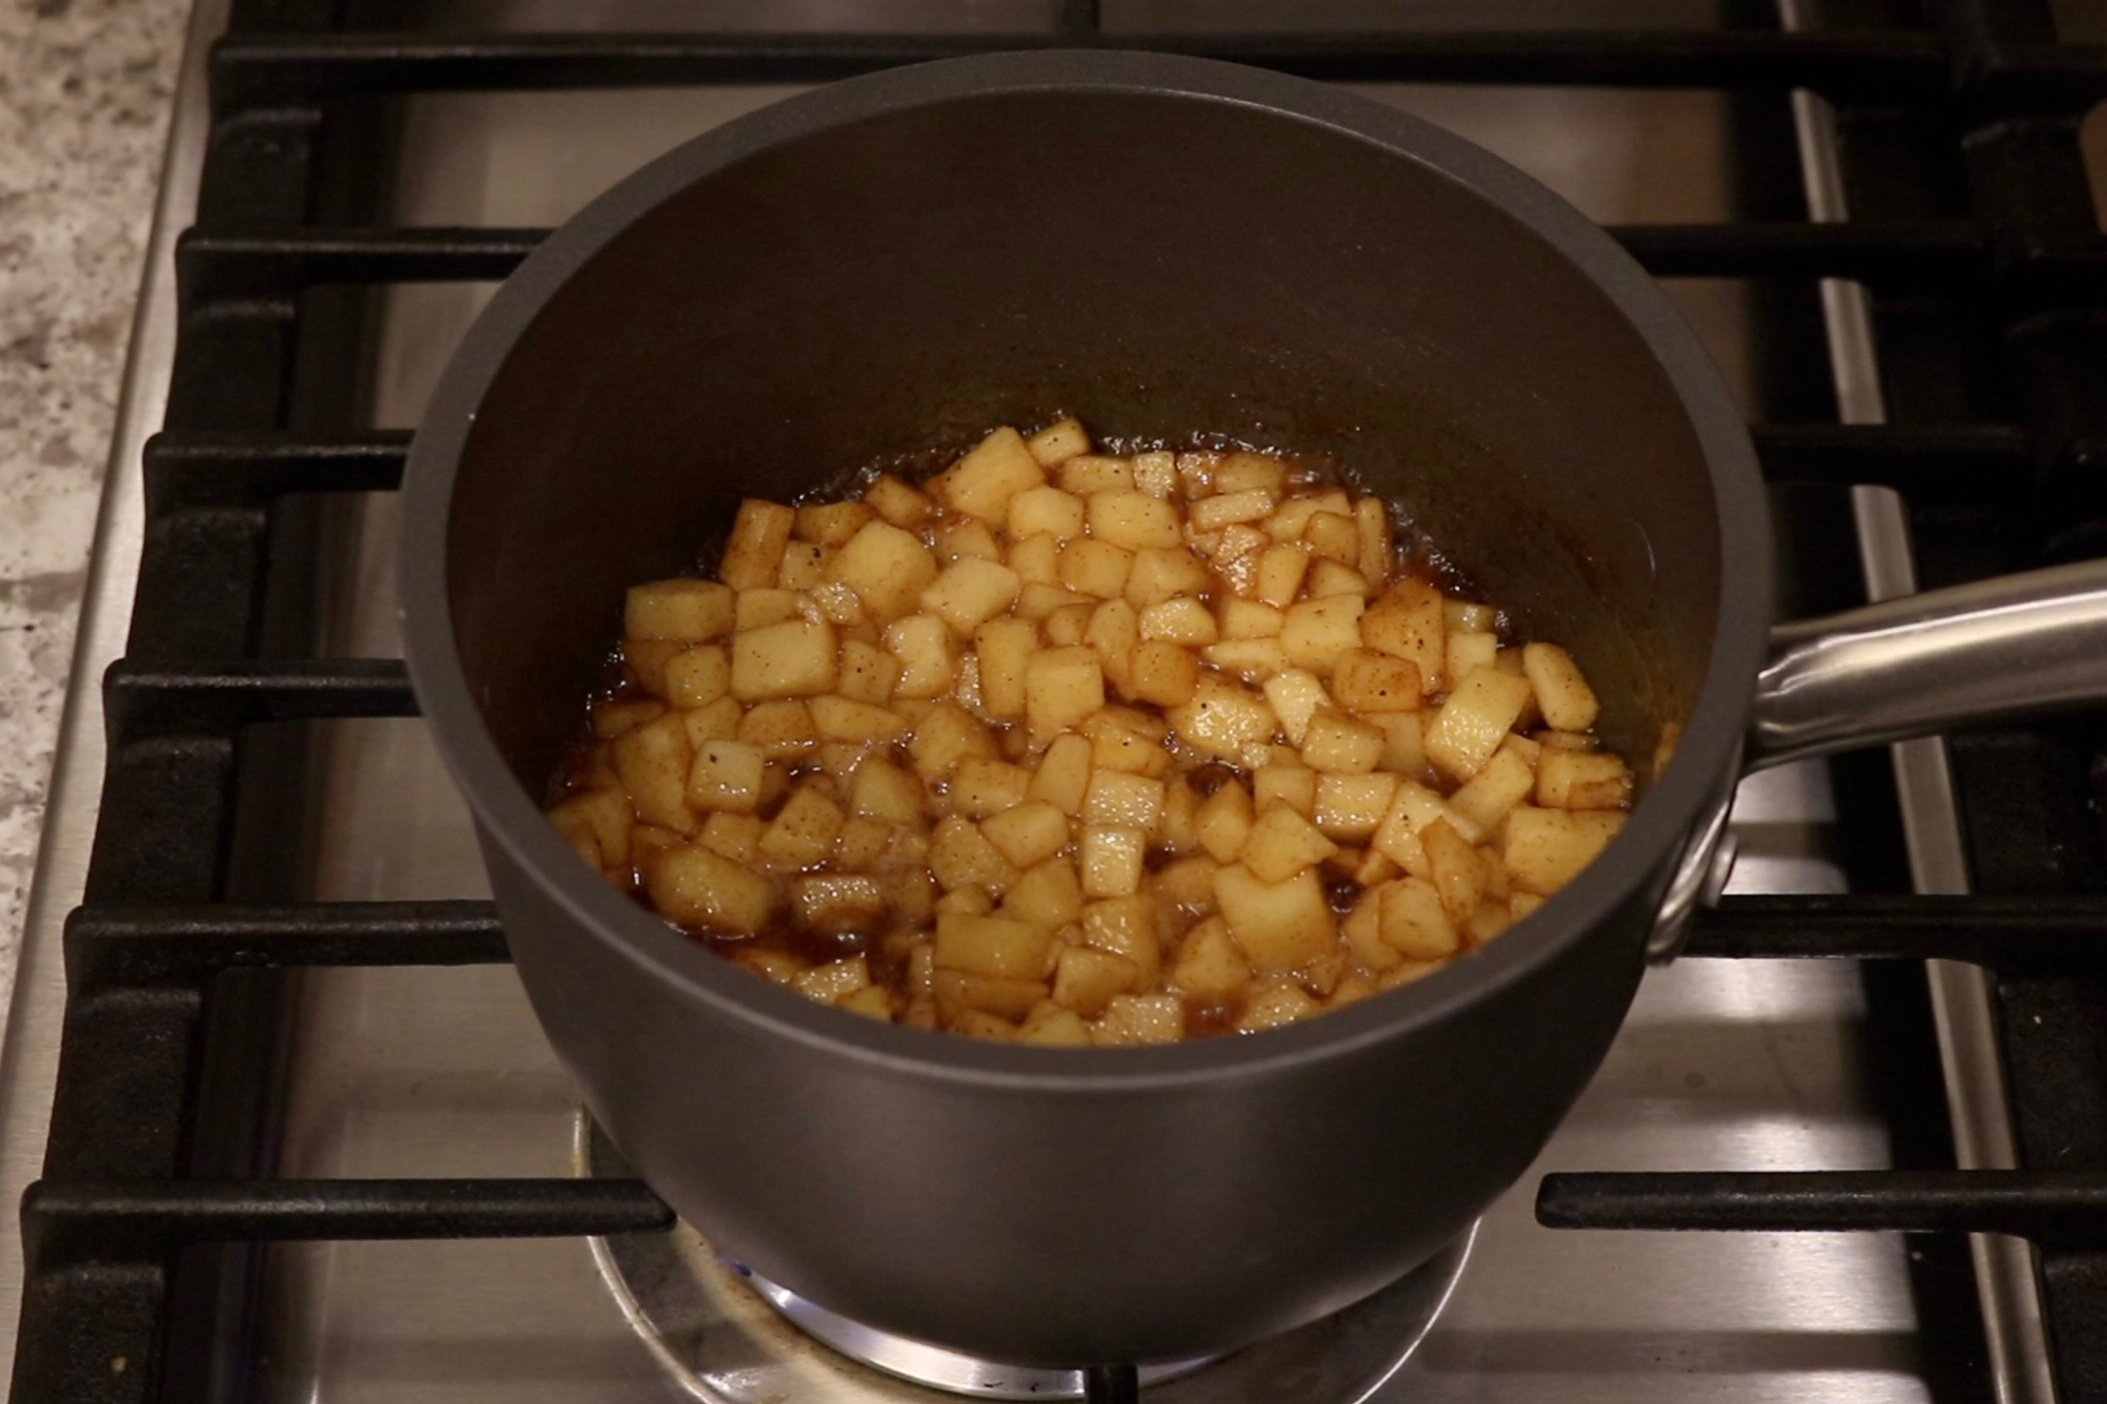 2. Heat over medium for 5-7 minutes stirring occasionally until apples begin to soften and mixture has a caramel consistency. Set aside. -